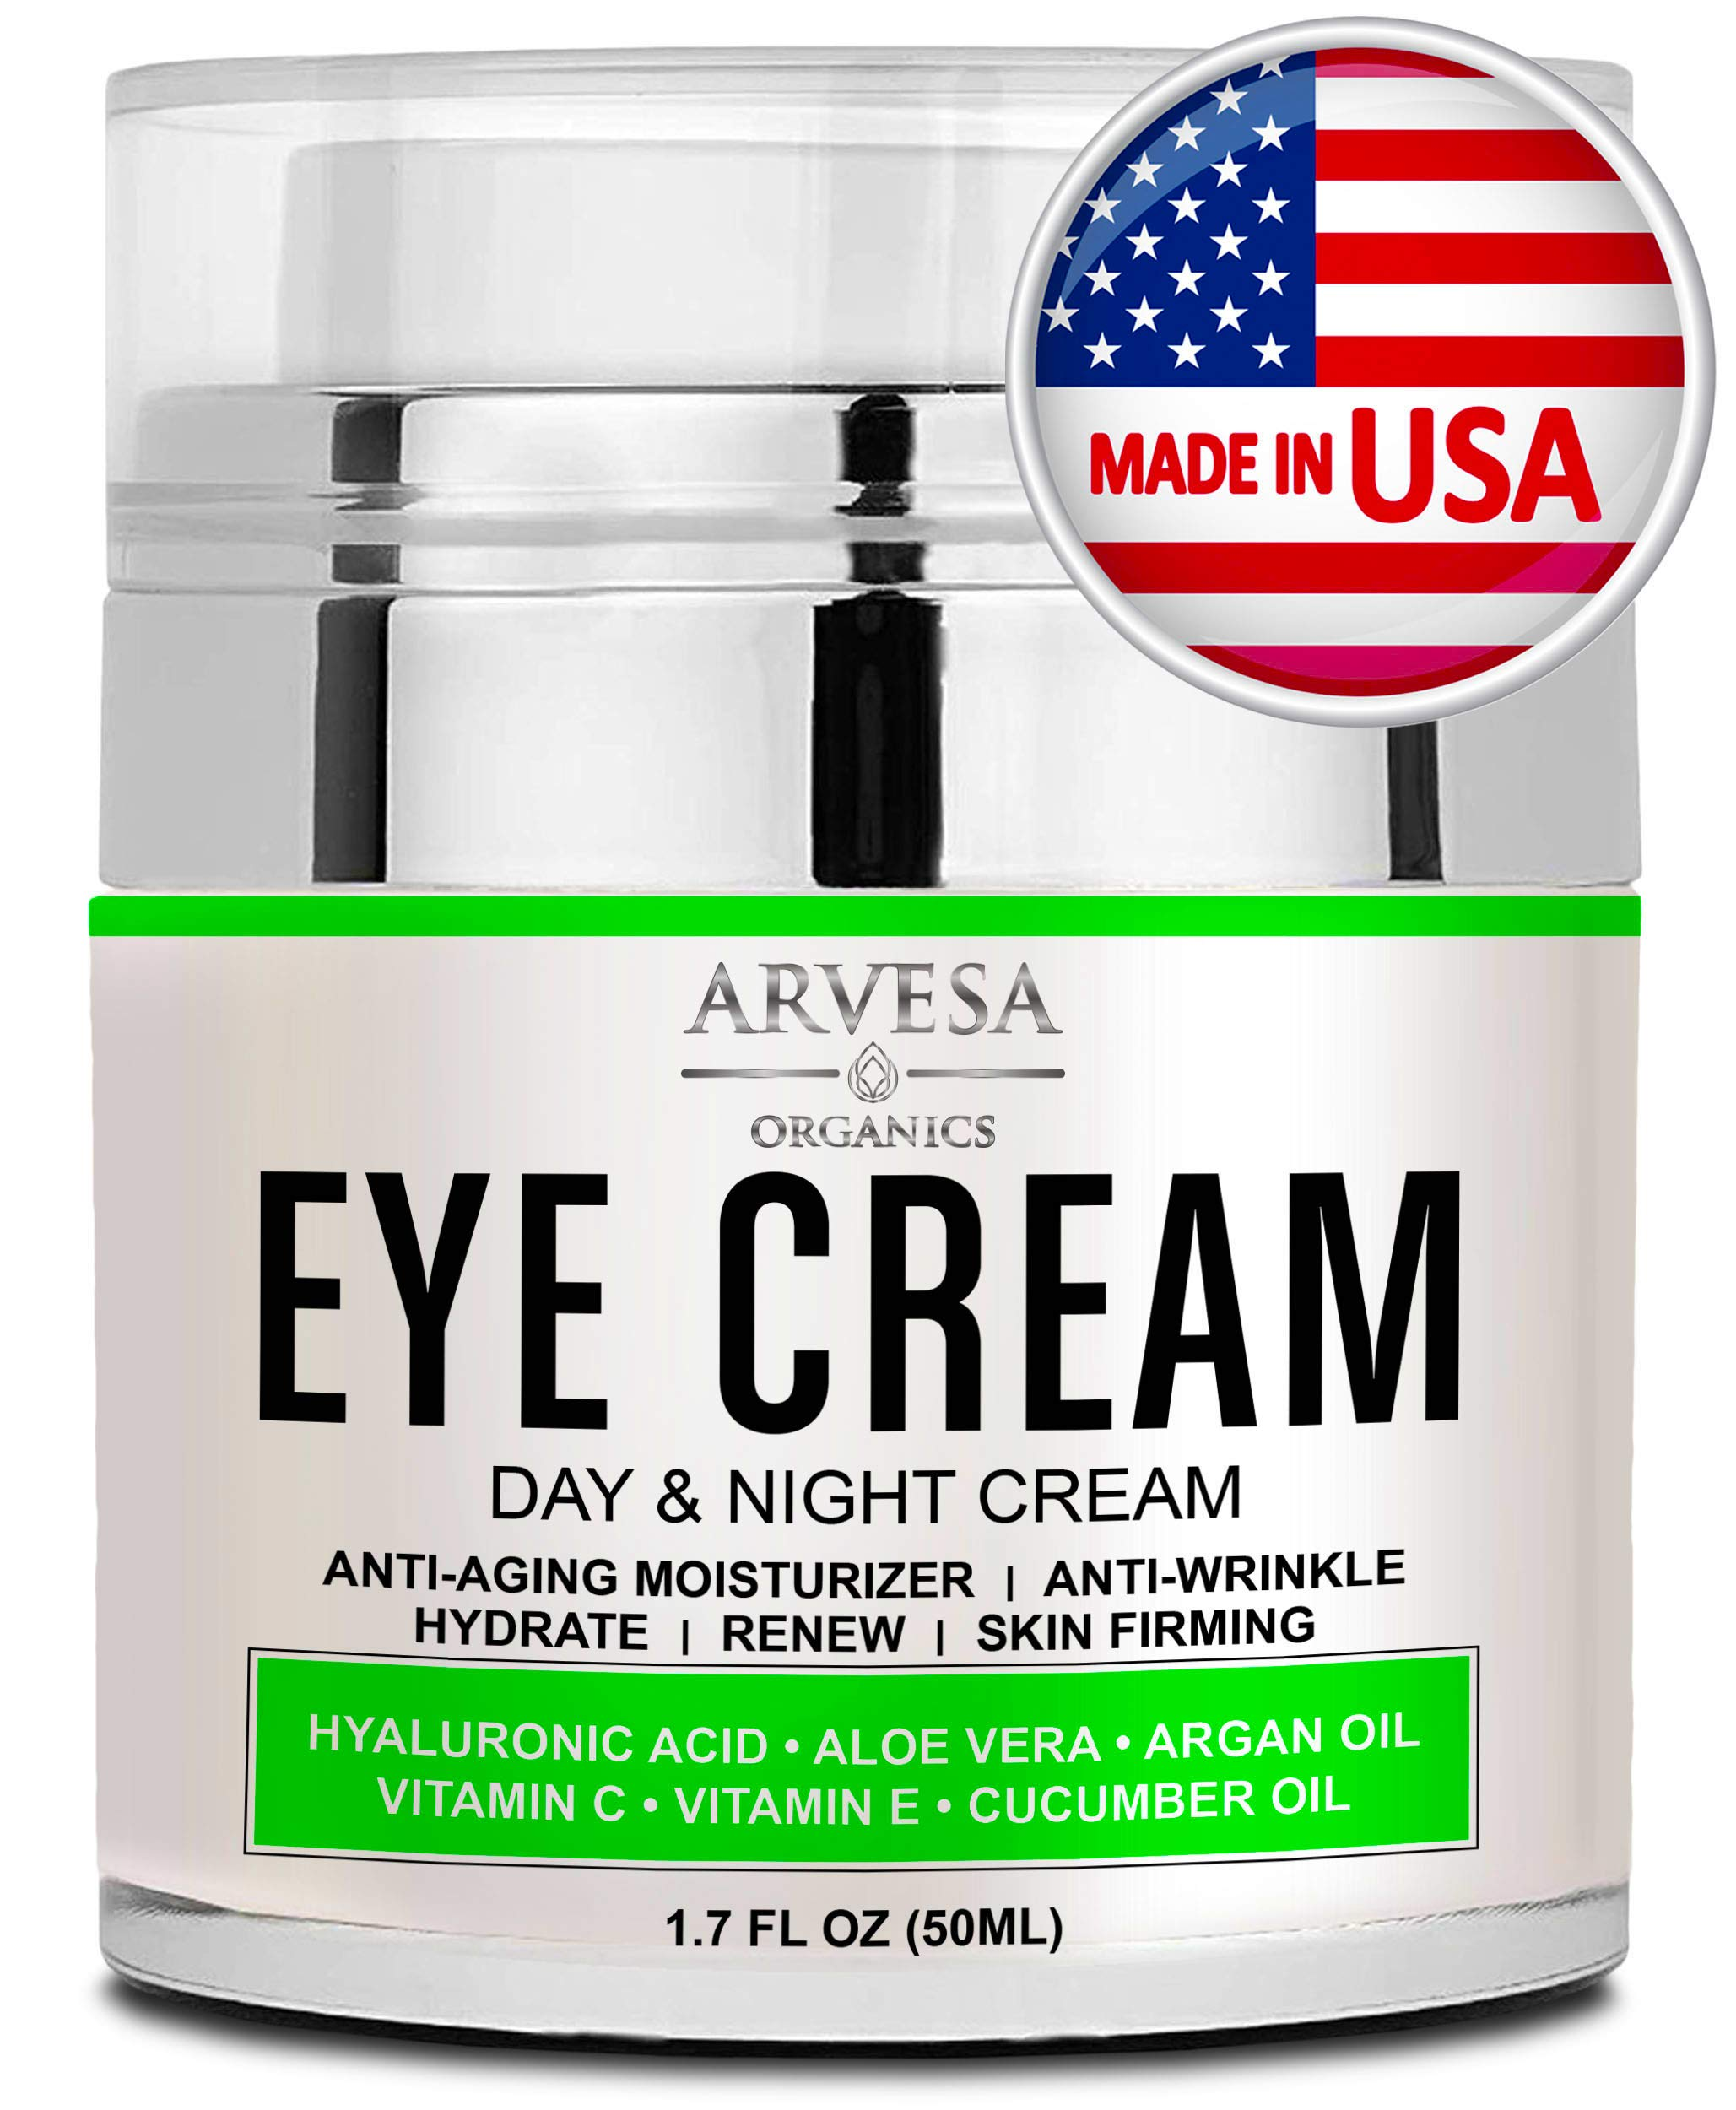 Best Eye Cream For Dark Circles and Puffiness - with Hyaluronic Acid - Vitamin C + E - Anti Aging Complex to Reduce Eye Bags - Wrinkles - Fine Lines - Made in USA - for Men & Women - 1.7 OZ by Arvesa